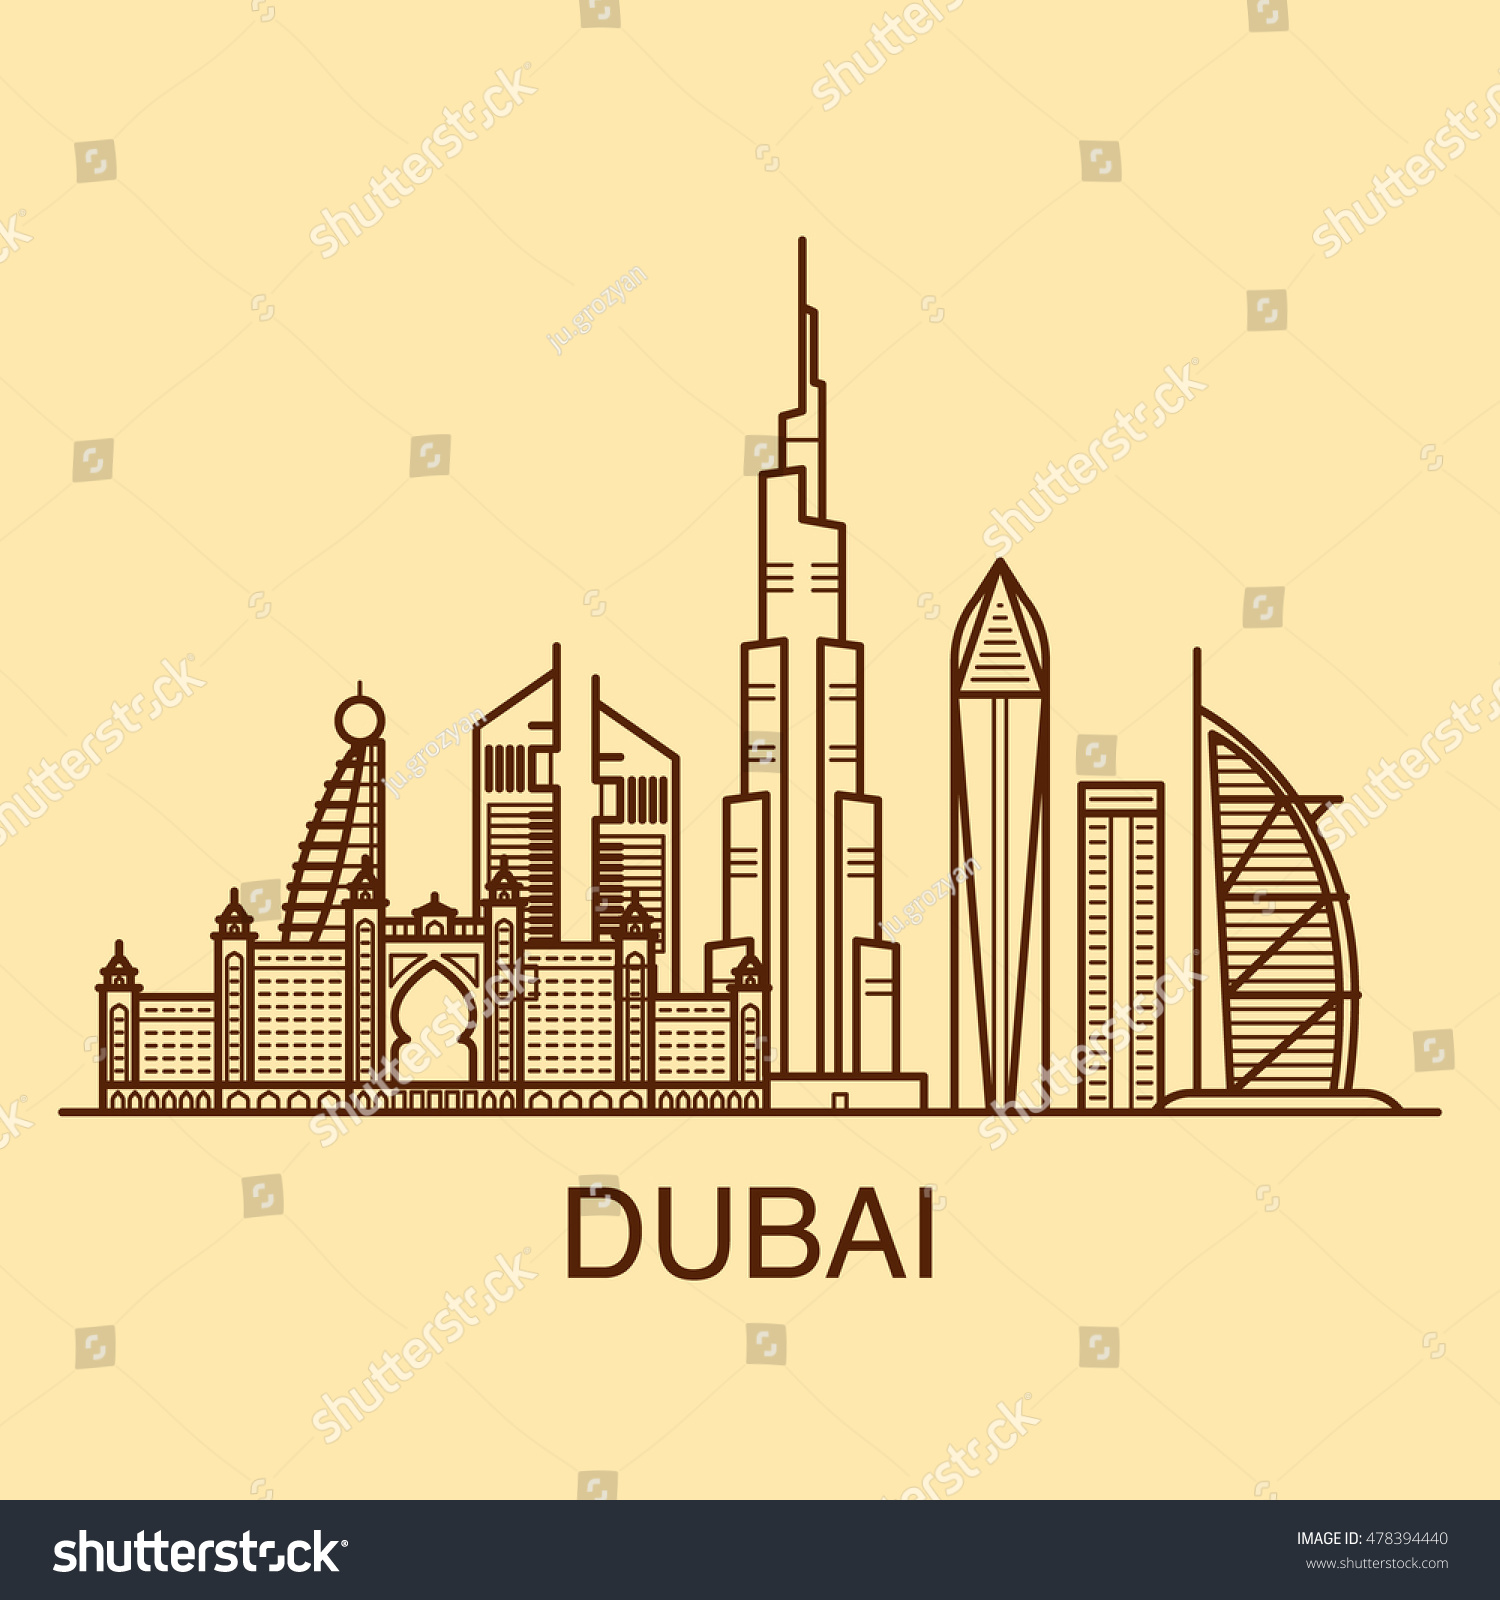 Art Line Uae : Famous buildings dubai line art ilustration stock vector